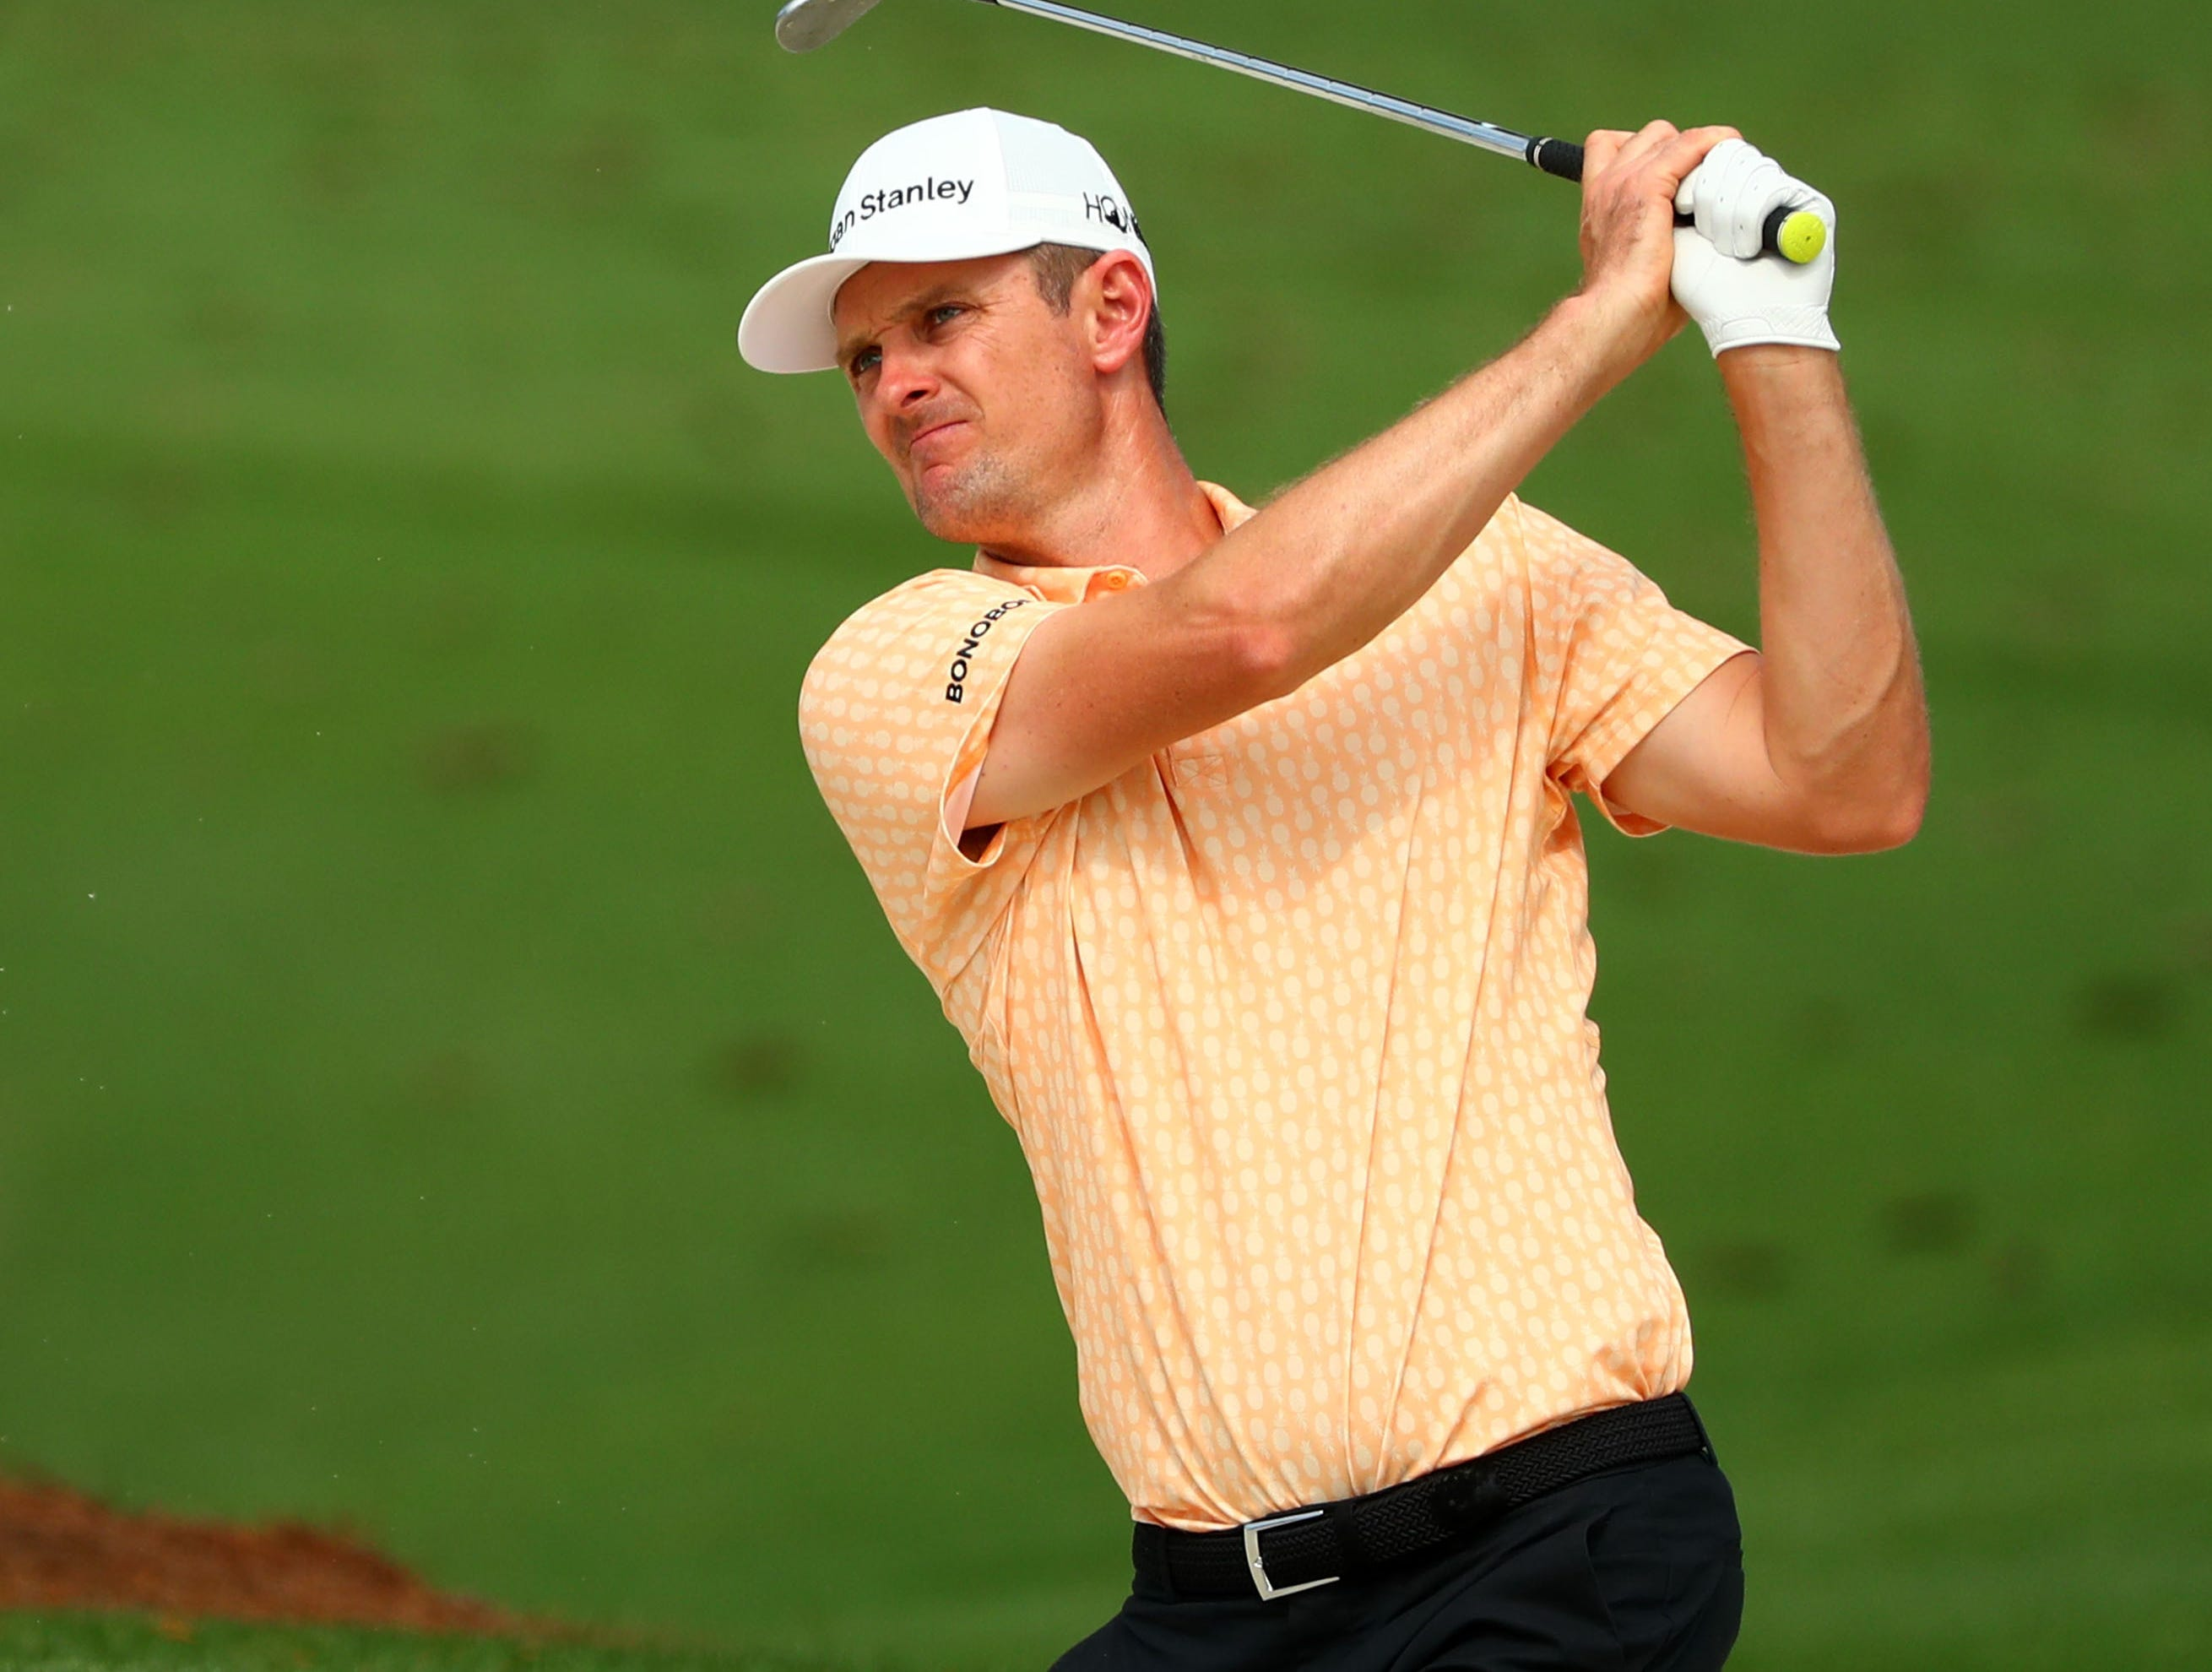 Apr 9, 2019; Augusta, GA, USA; Justin Rose of England hits balls from a bunker at the practice facility during a practice round for The Masters golf tournament at Augusta National Golf Club. Mandatory Credit: Rob Schumacher-USA TODAY Sports